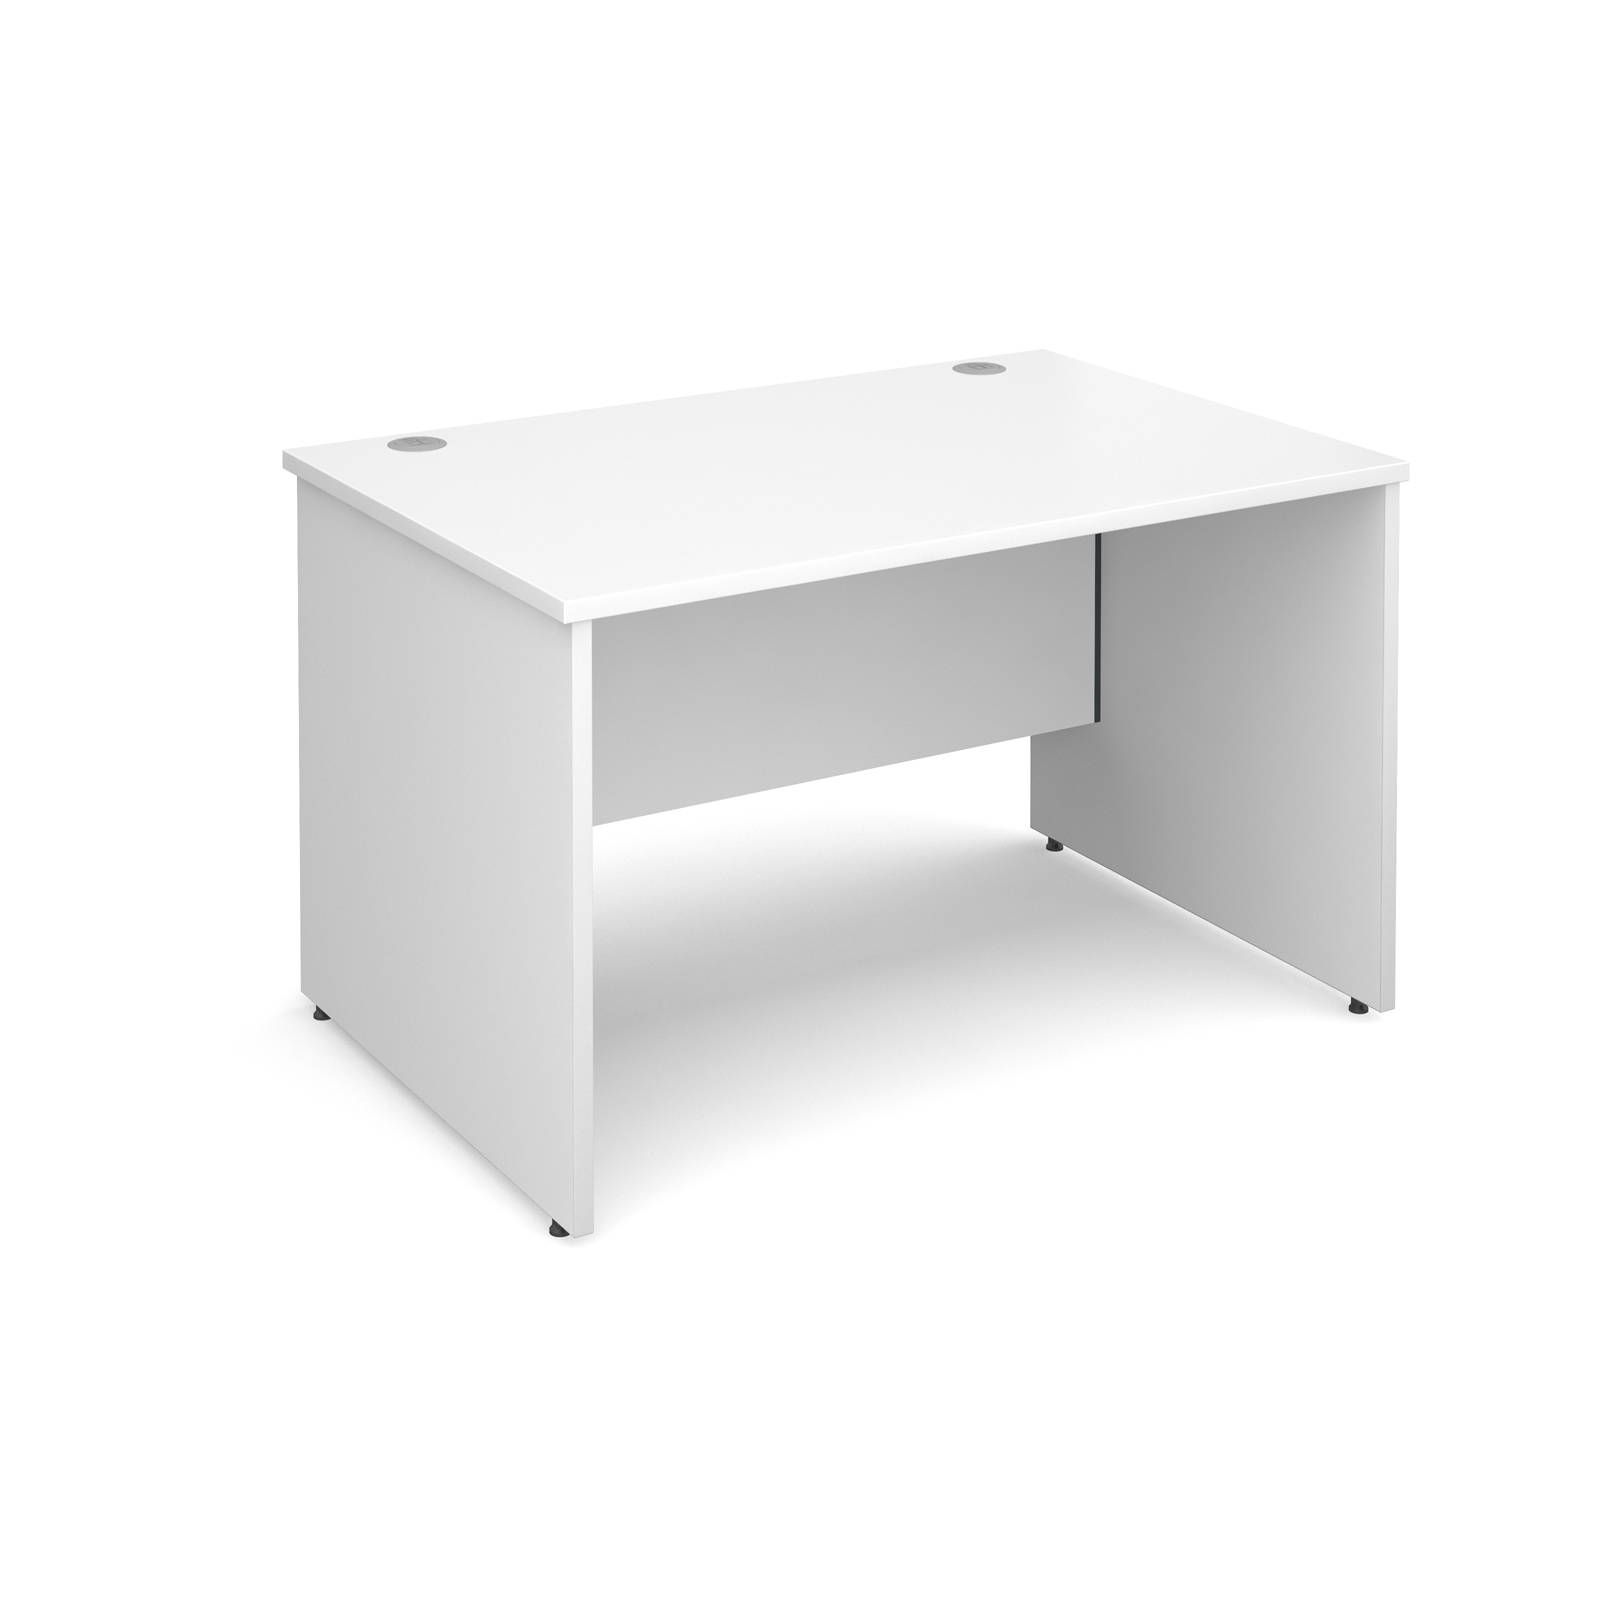 Maestro 25 Pl Straight Desk 1200mm X 800mm White Panel Leg Design